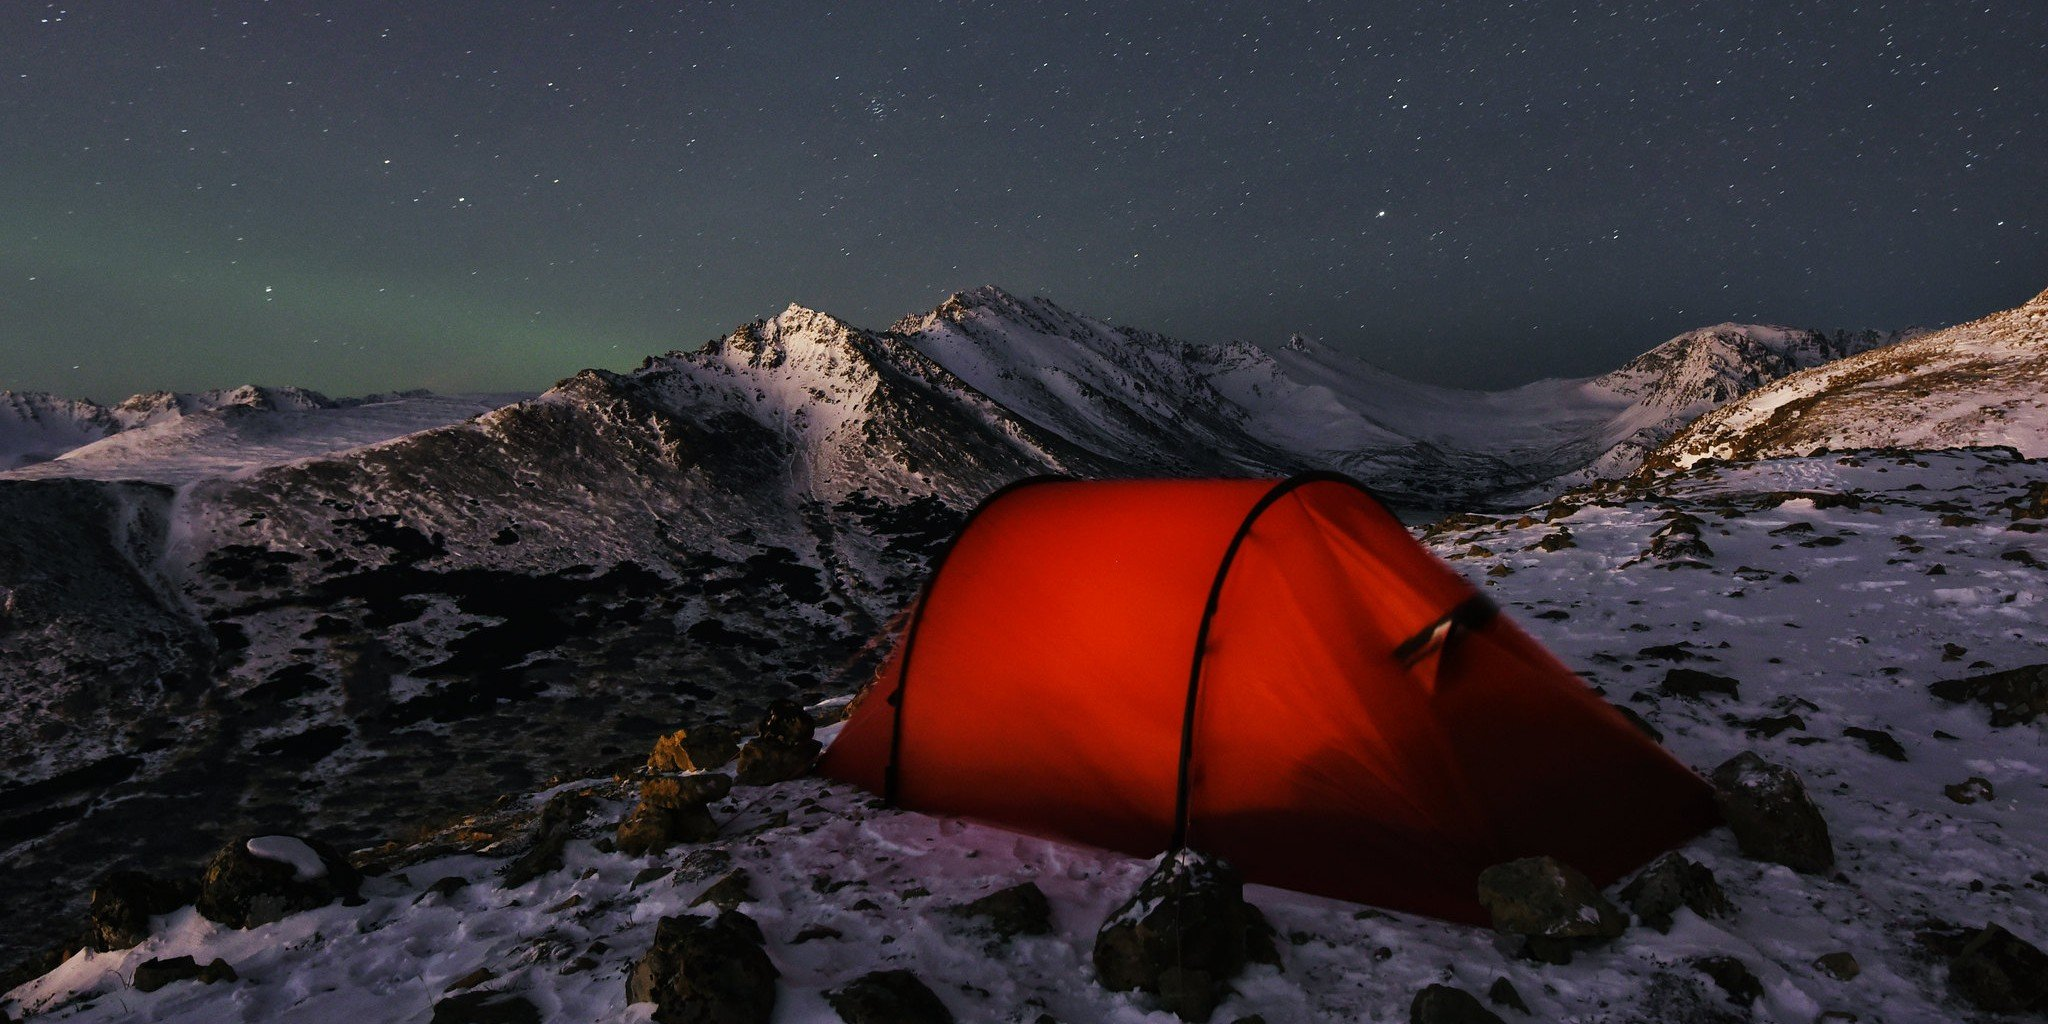 The ultimate tent buying guide for 2021: Are expensive tents worth it?